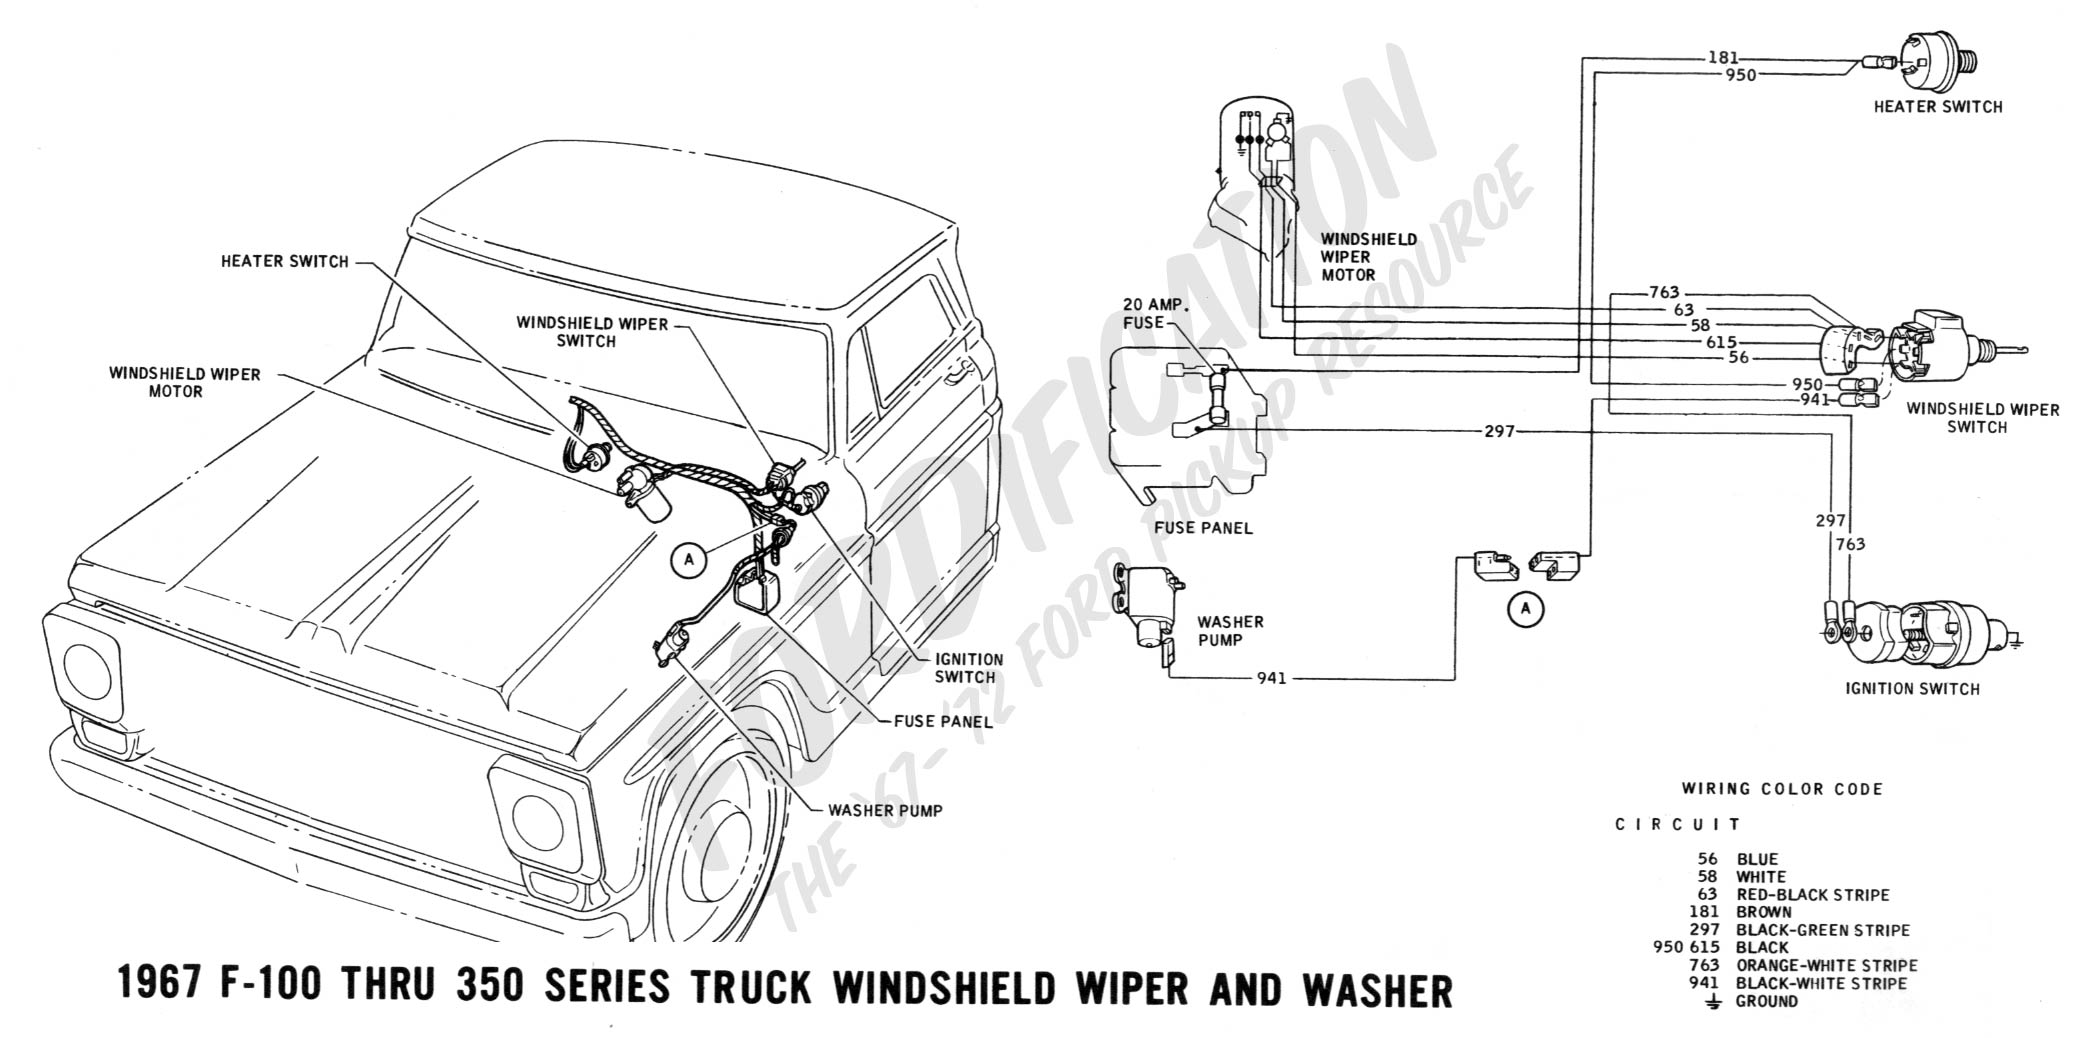 wiring 1967wipers ford truck technical drawings and schematics section h wiring 1966 ford truck wiring diagram at aneh.co